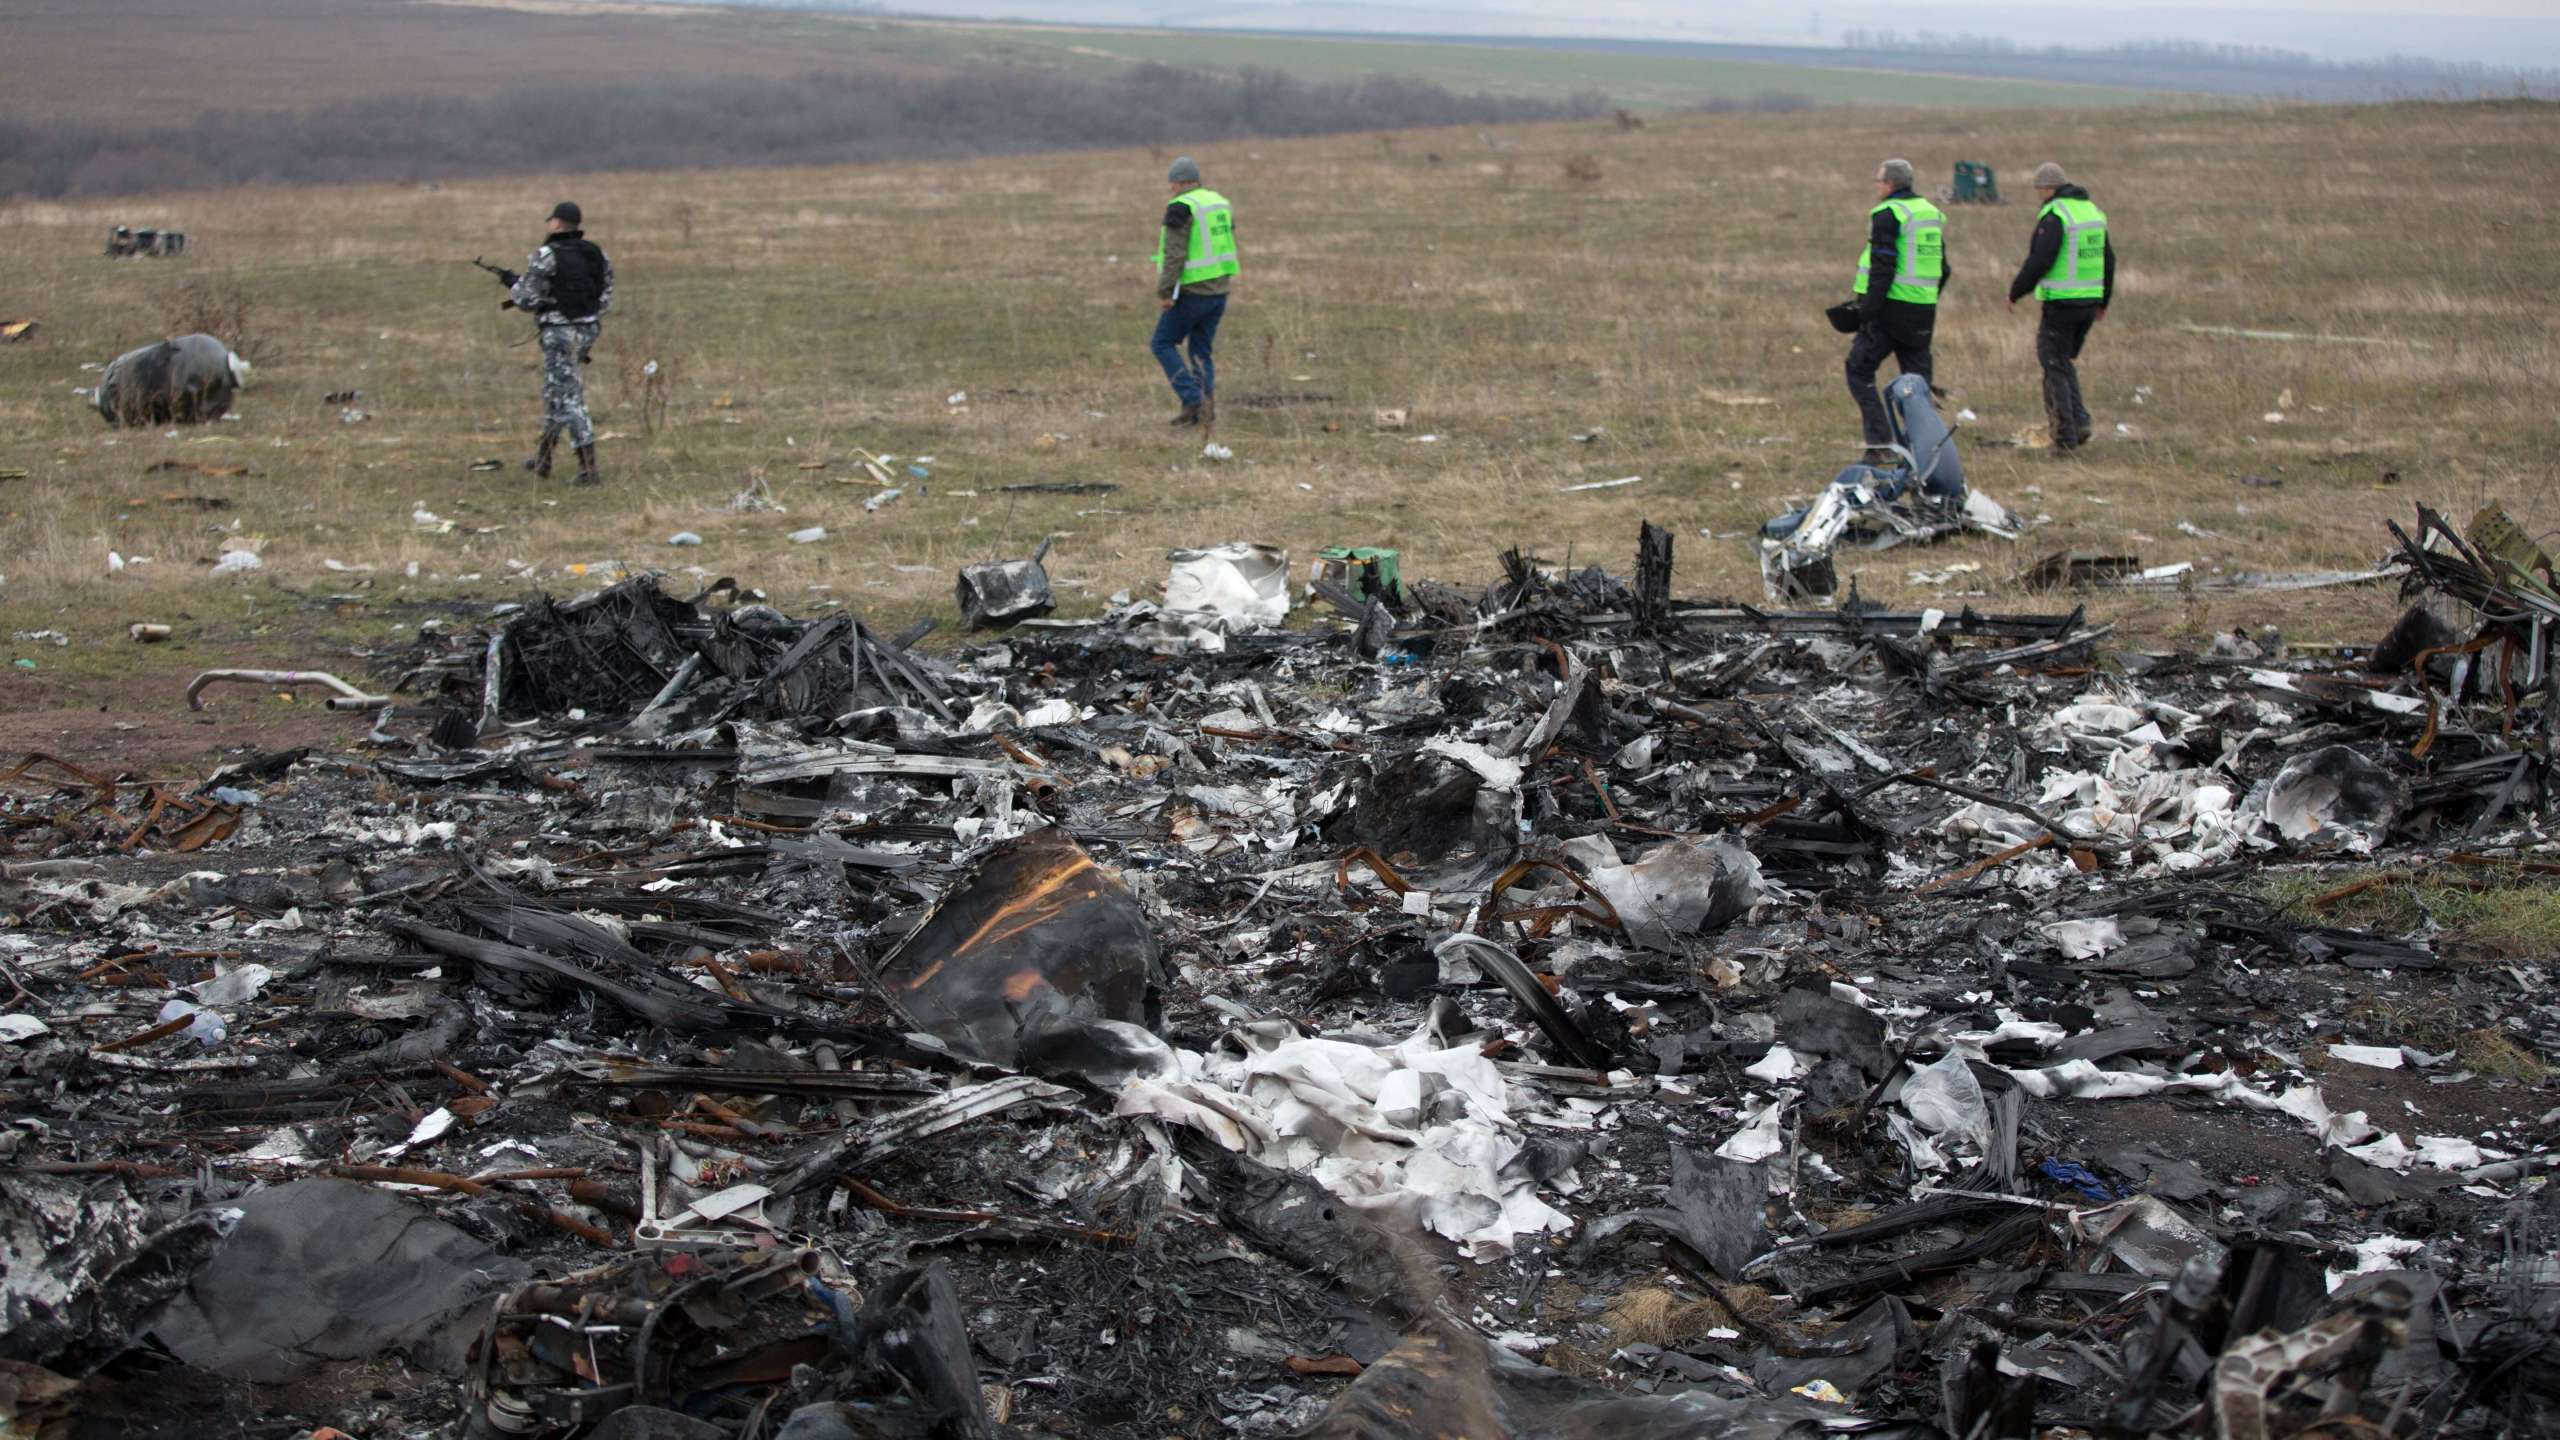 Dutch investigators accompanied by pro-Russian armed rebels arrive near parts of the Malaysia Airlines Flight MH17 at the crash site near the Grabove village in eastern Ukraine on Nov. 11, 2014. (Credit: MENAHEM KAHANA/AFP/Getty Images)